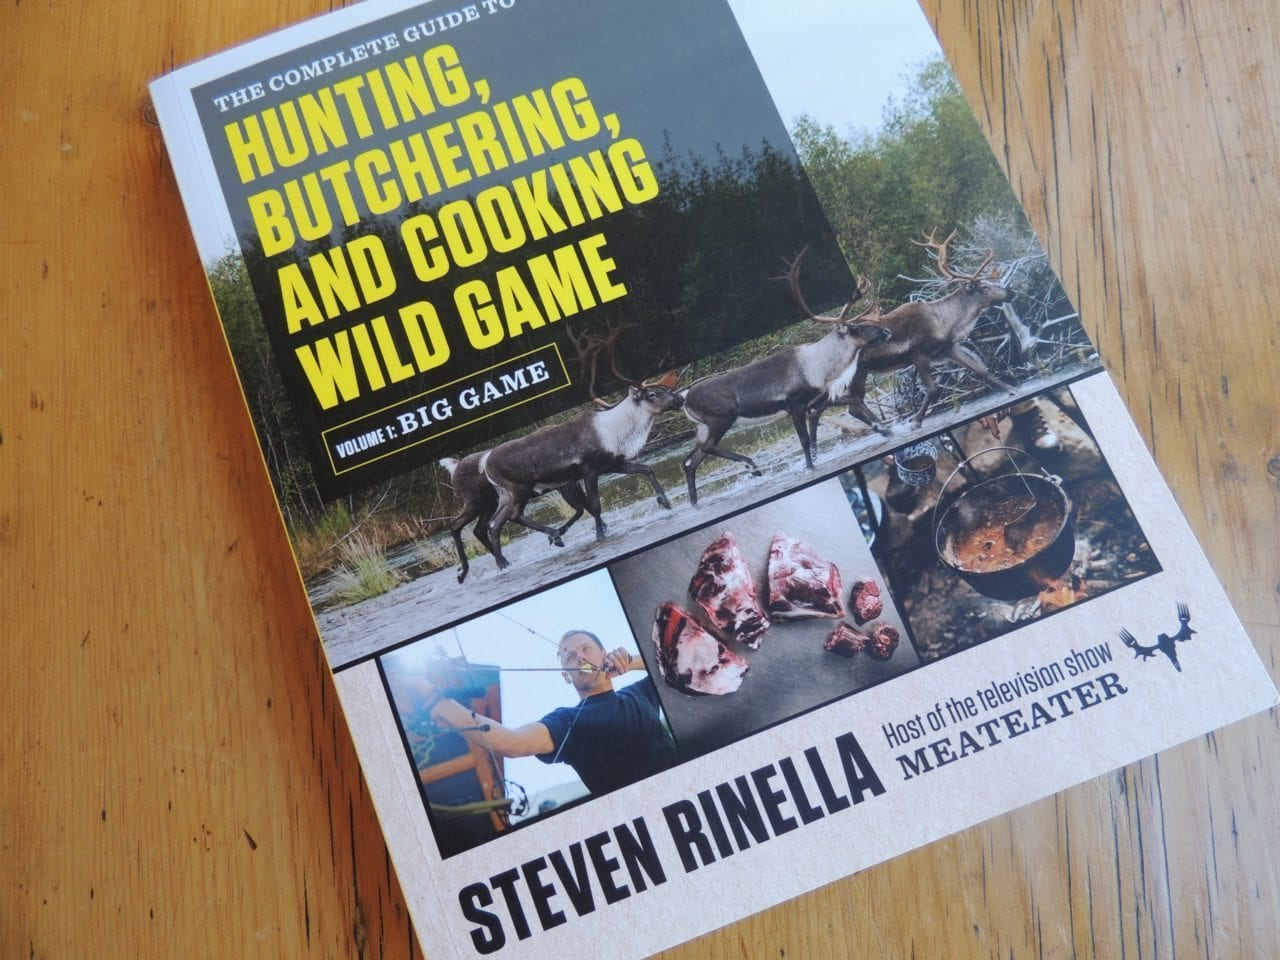 View The Complete Guide To Hunting, Butchering, And Cooking Wild Game  Gif